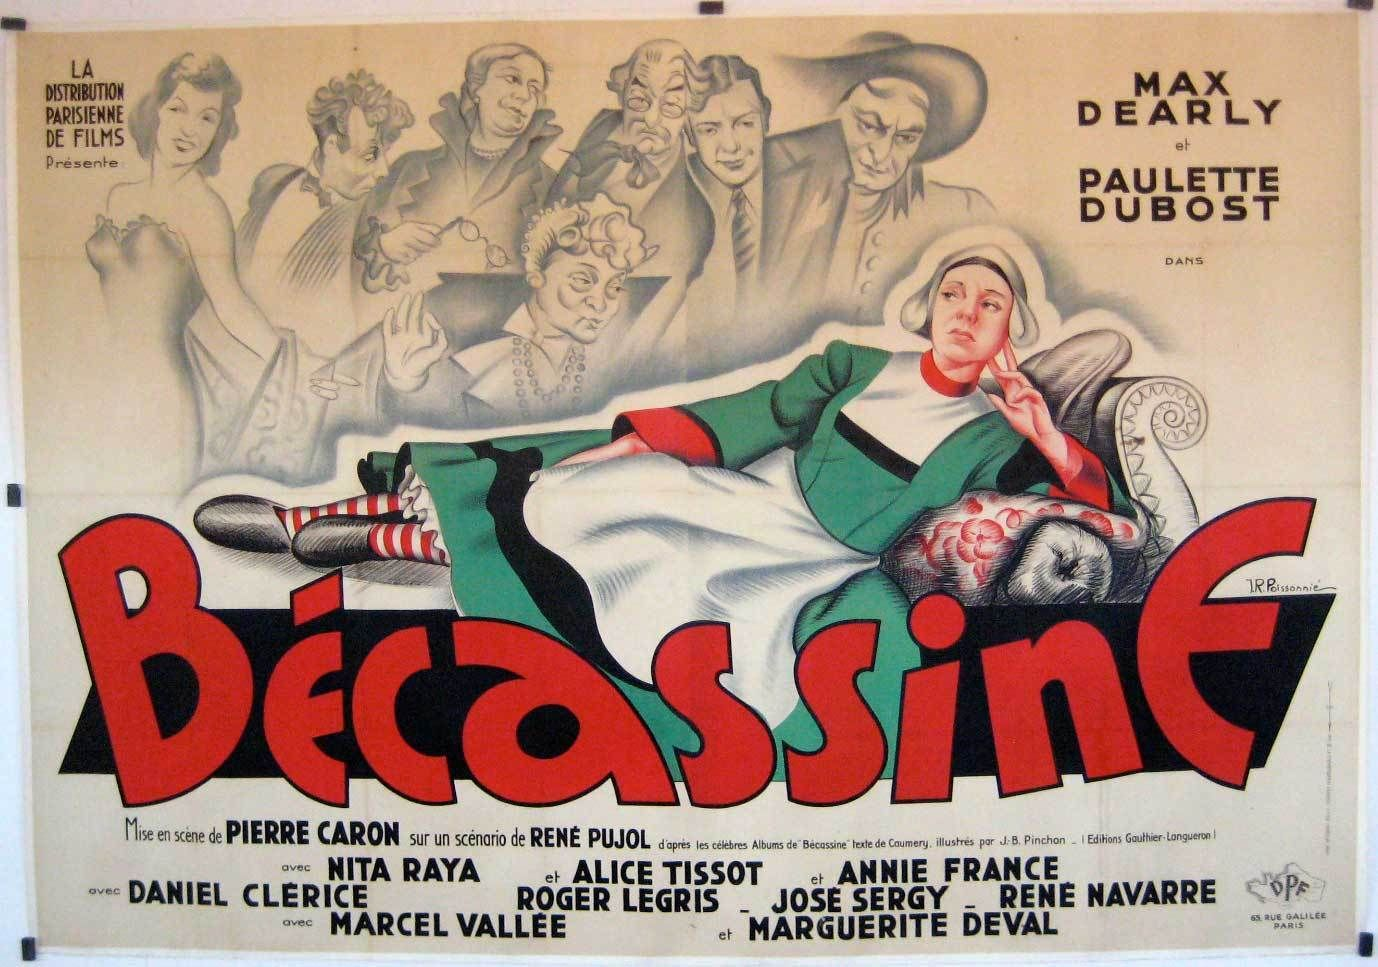 Watch Bécassine! Full-Movie Streaming